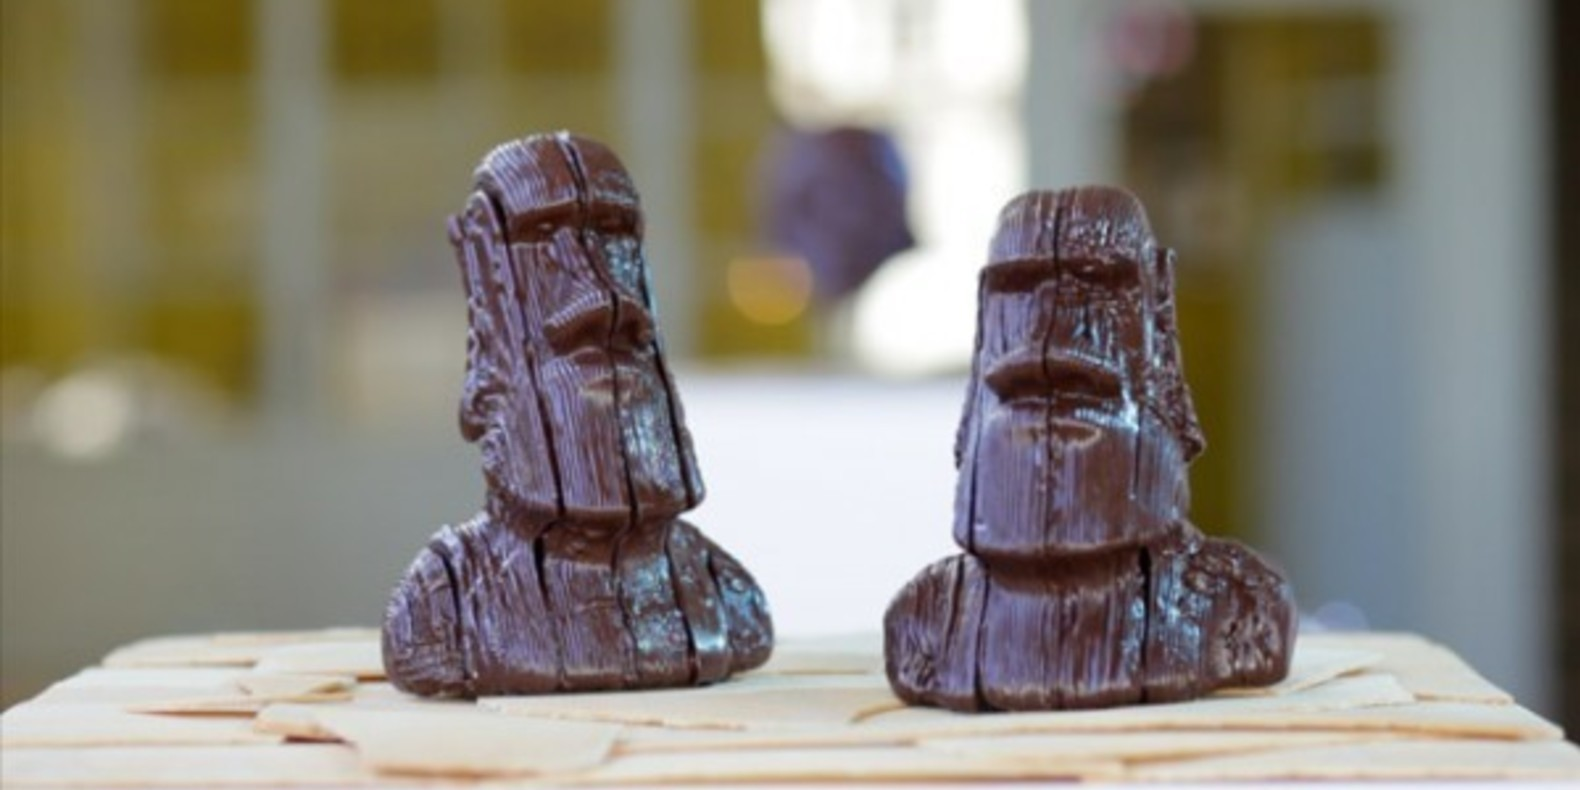 android kitkat chocnology impression 3D printed printed chocolat moad johannesbourg artist cults KitKat imprime en 3D cults3D 1